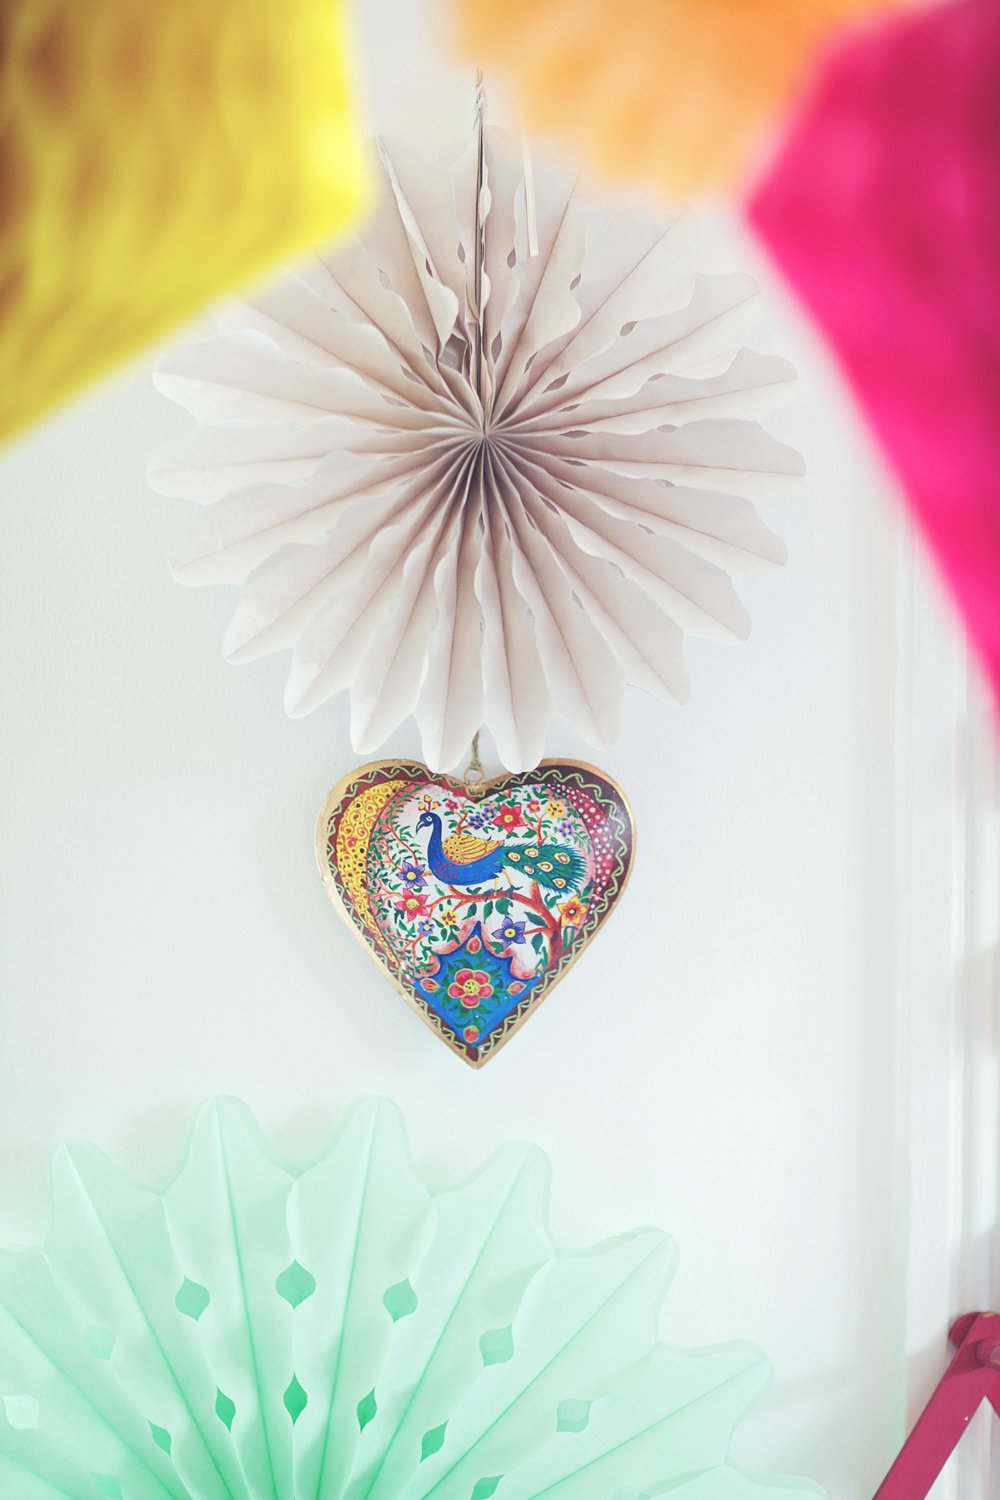 Hanging Peacock Heart Decoration: £5.00